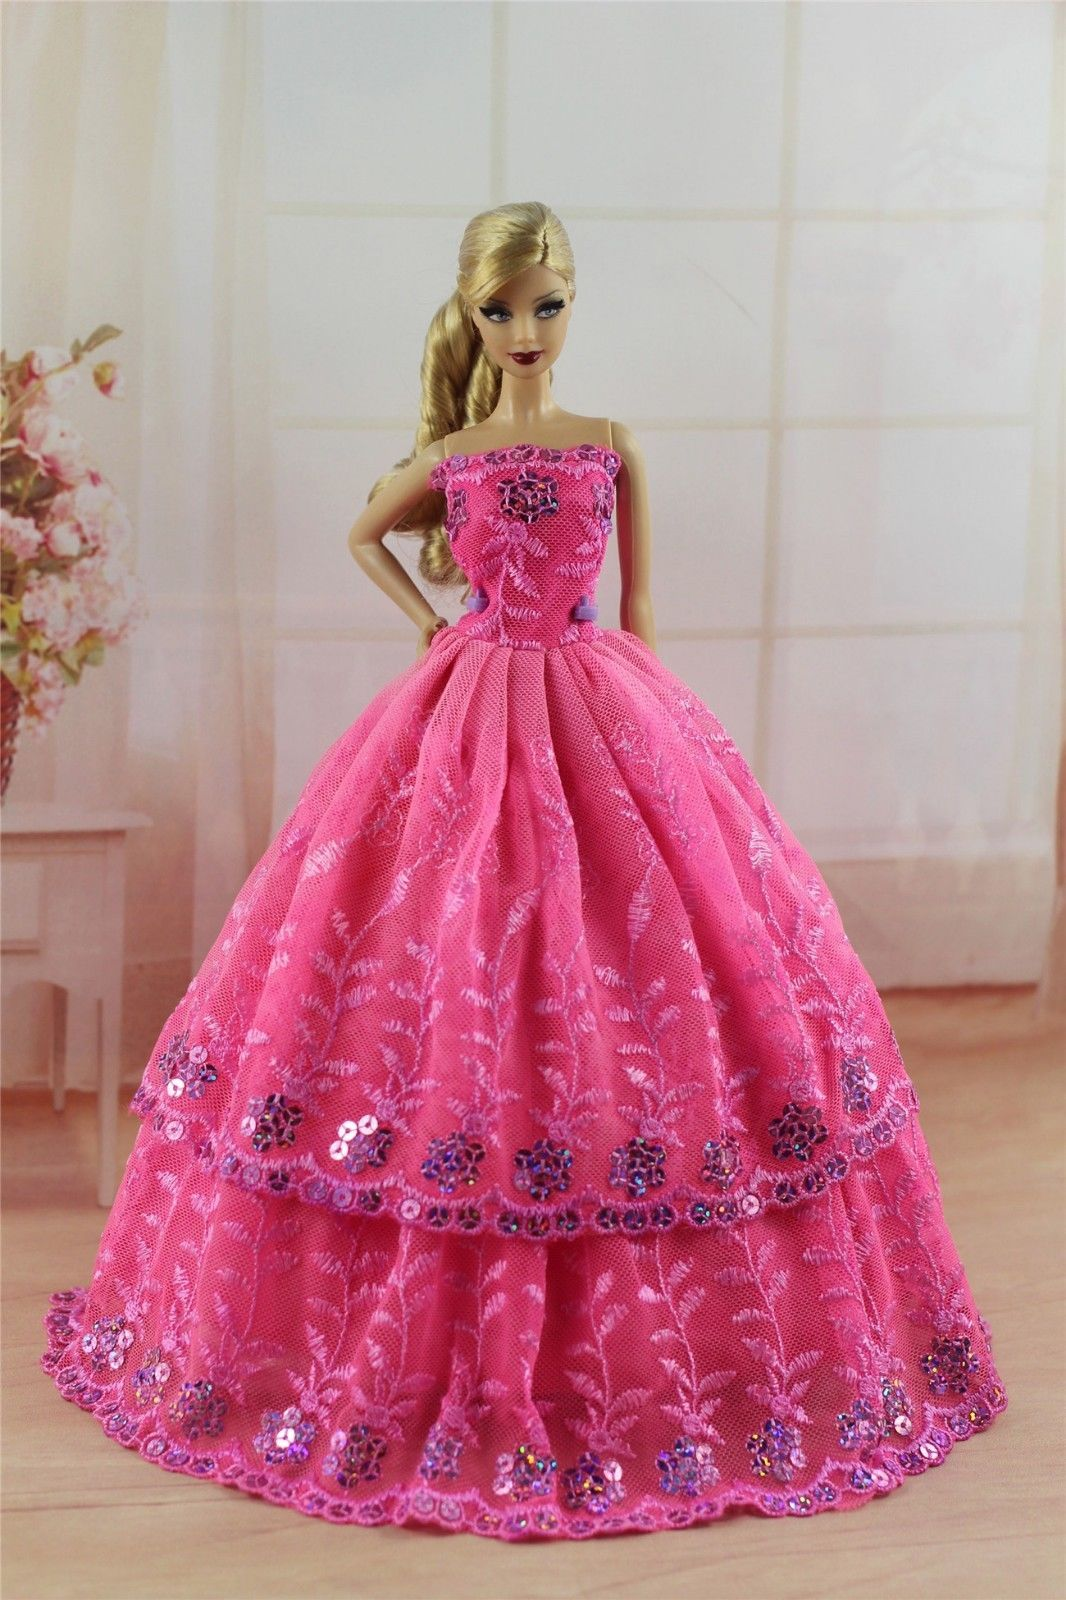 New 4 PCS Princess Dress/Wedding Clothes/Gown For Barbie Doll S303 ...